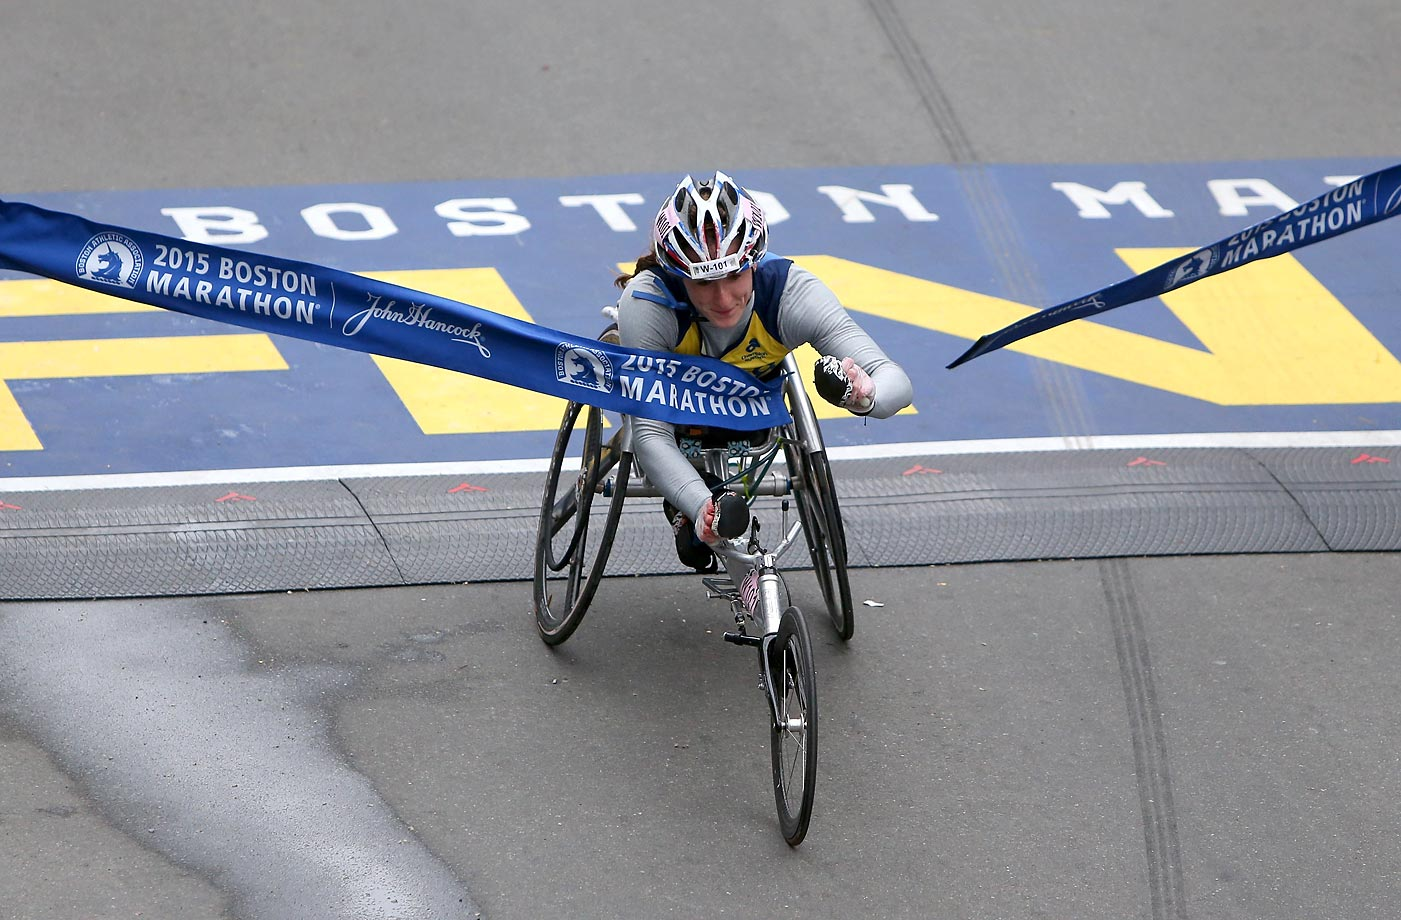 Tatyana McFadden of the United States crosses the finish line to win the women's push rim wheelchair division.